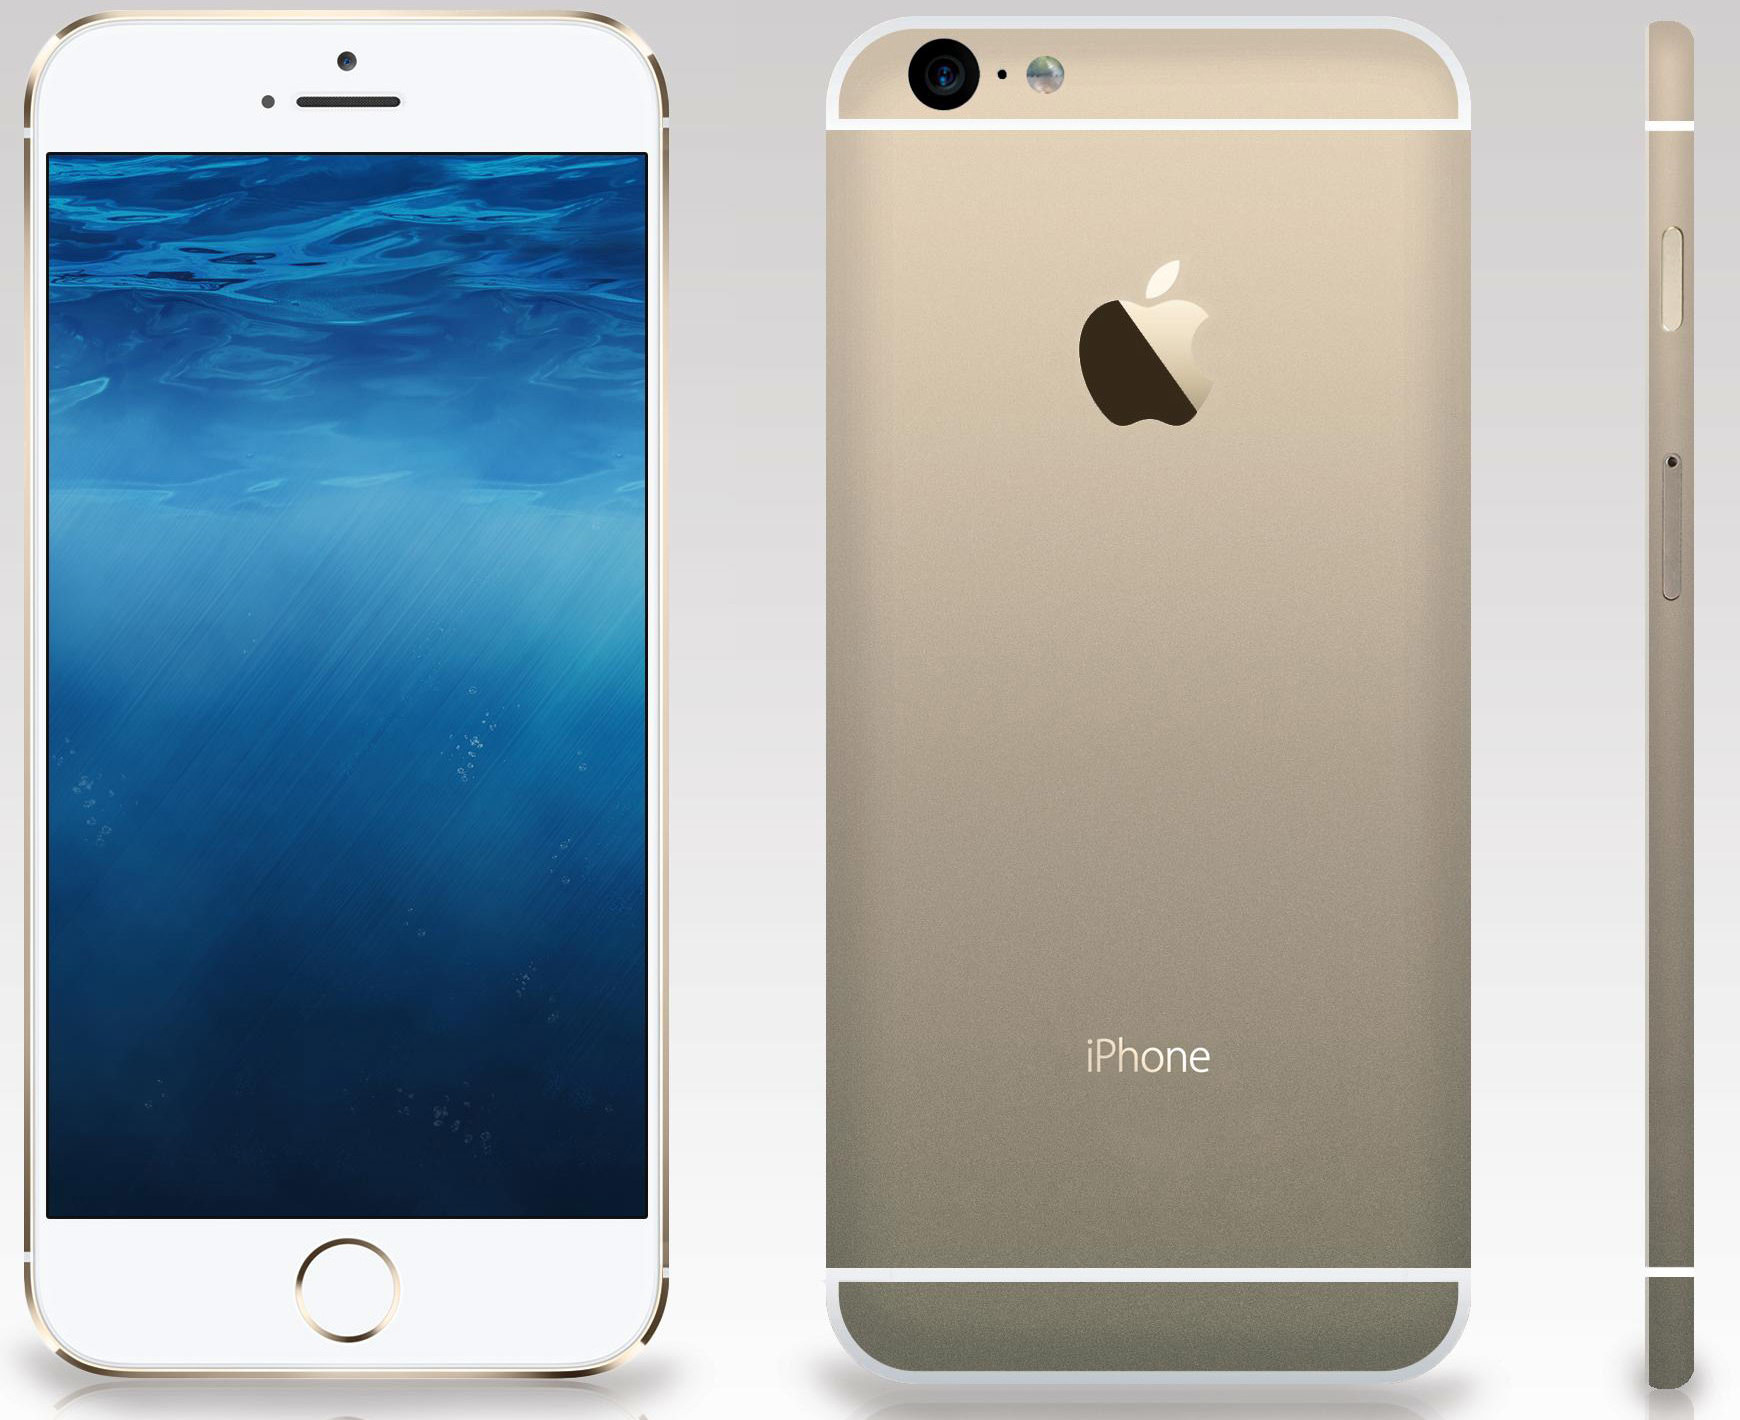 apple iphone 6 a1549 gsm 16gb specs and price phonegg. Black Bedroom Furniture Sets. Home Design Ideas